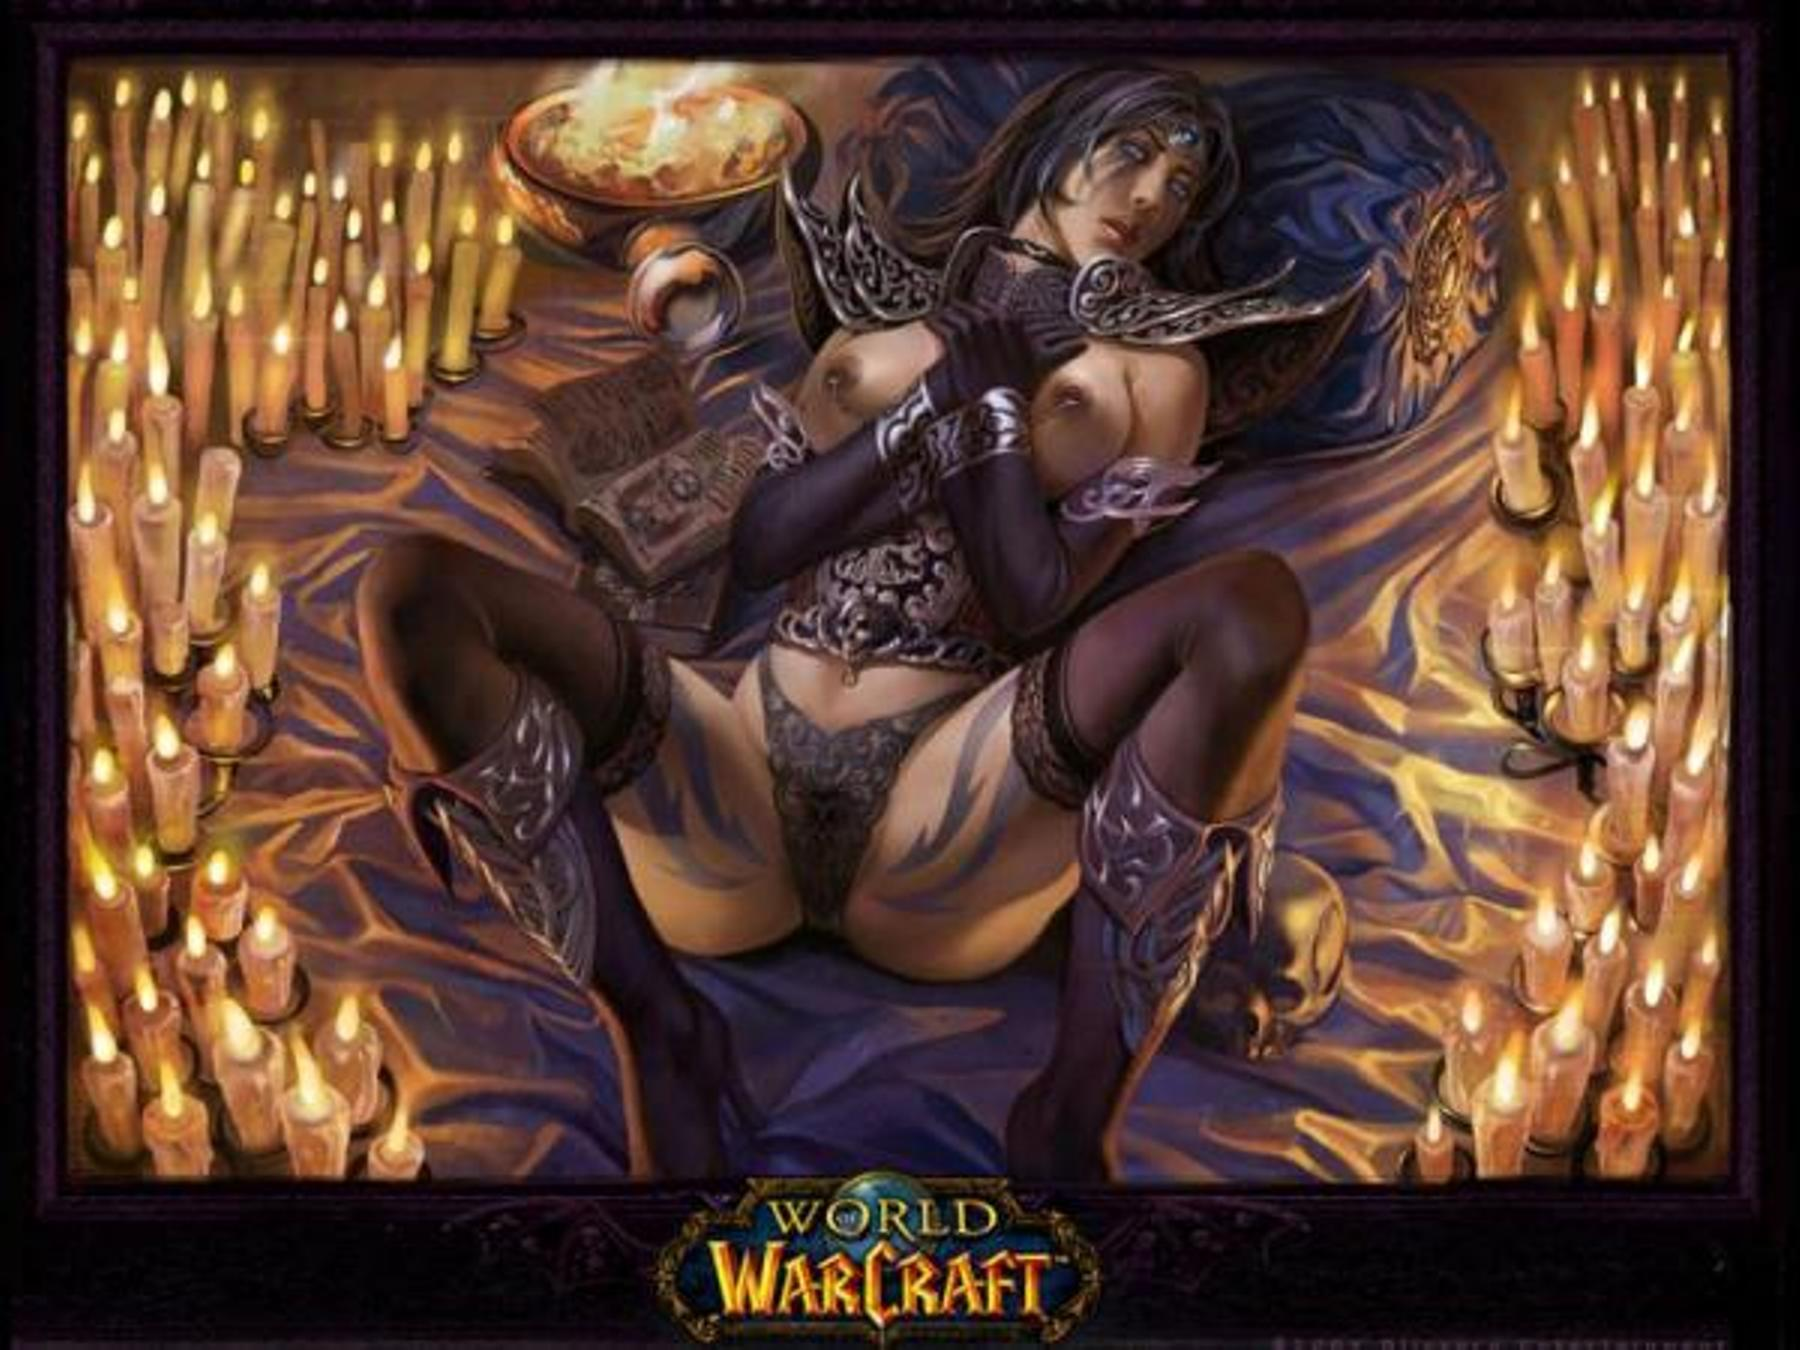 Sexy warlock adult photo